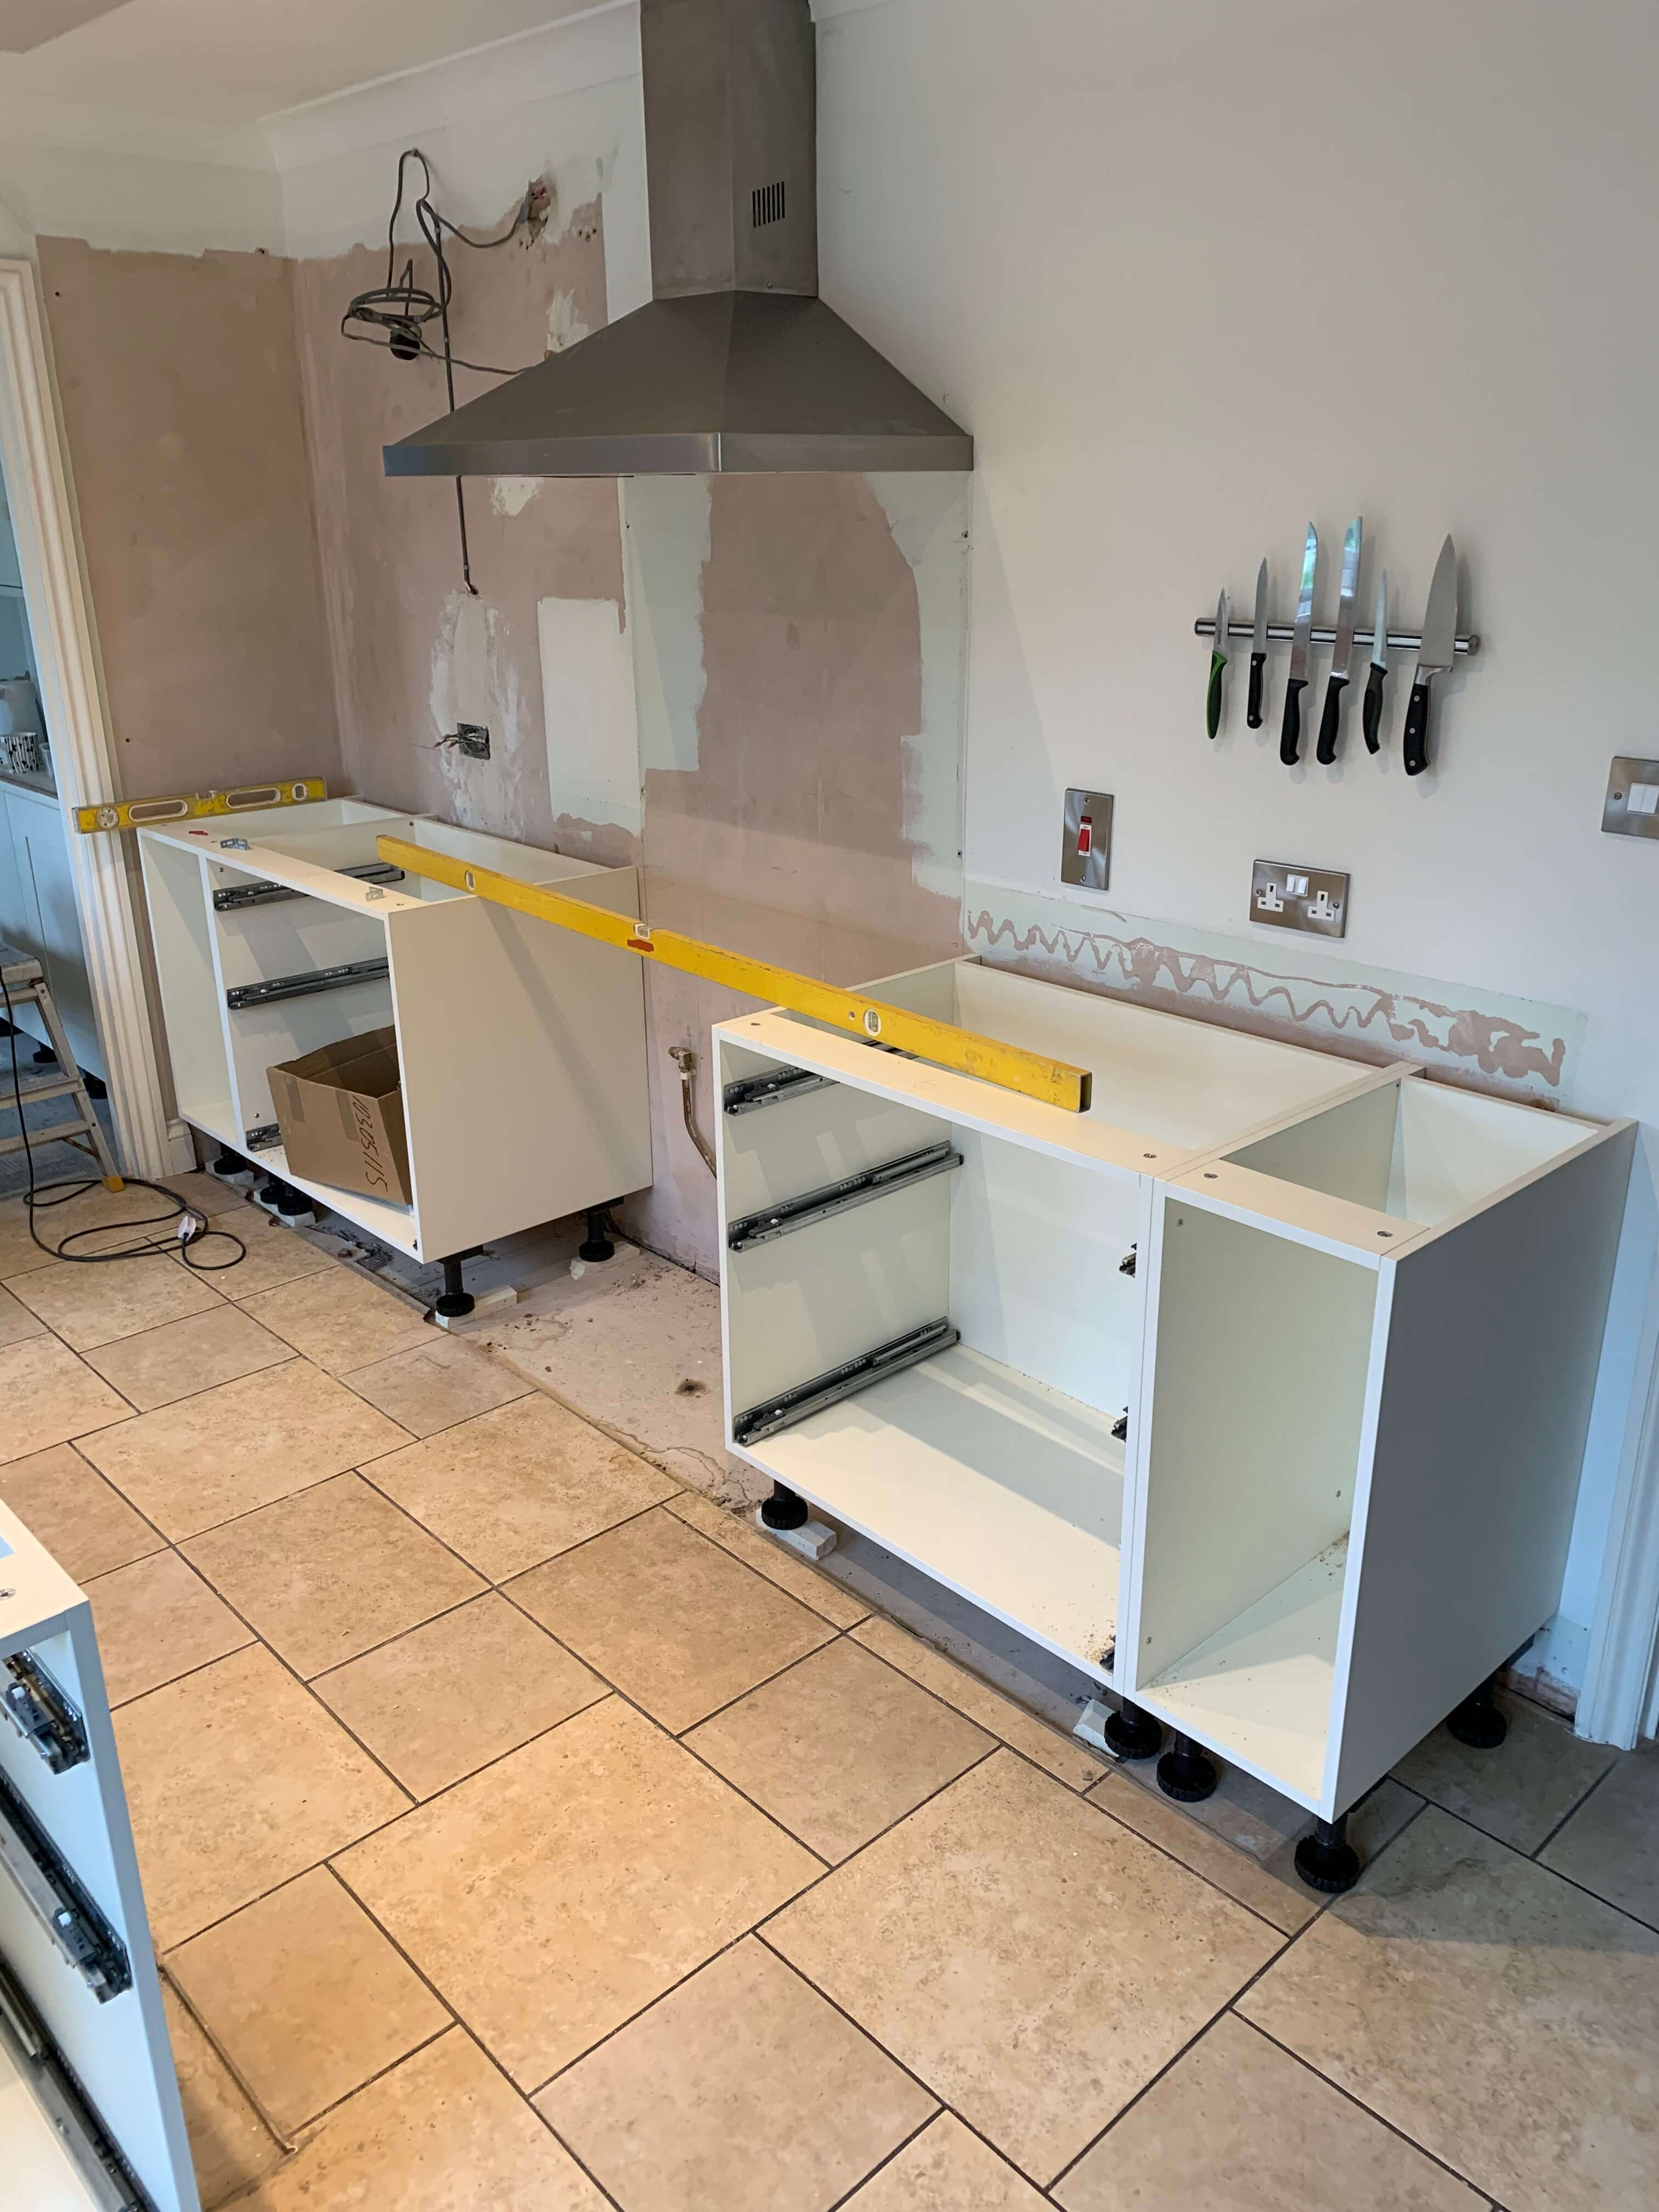 Kitchen units starting to go in